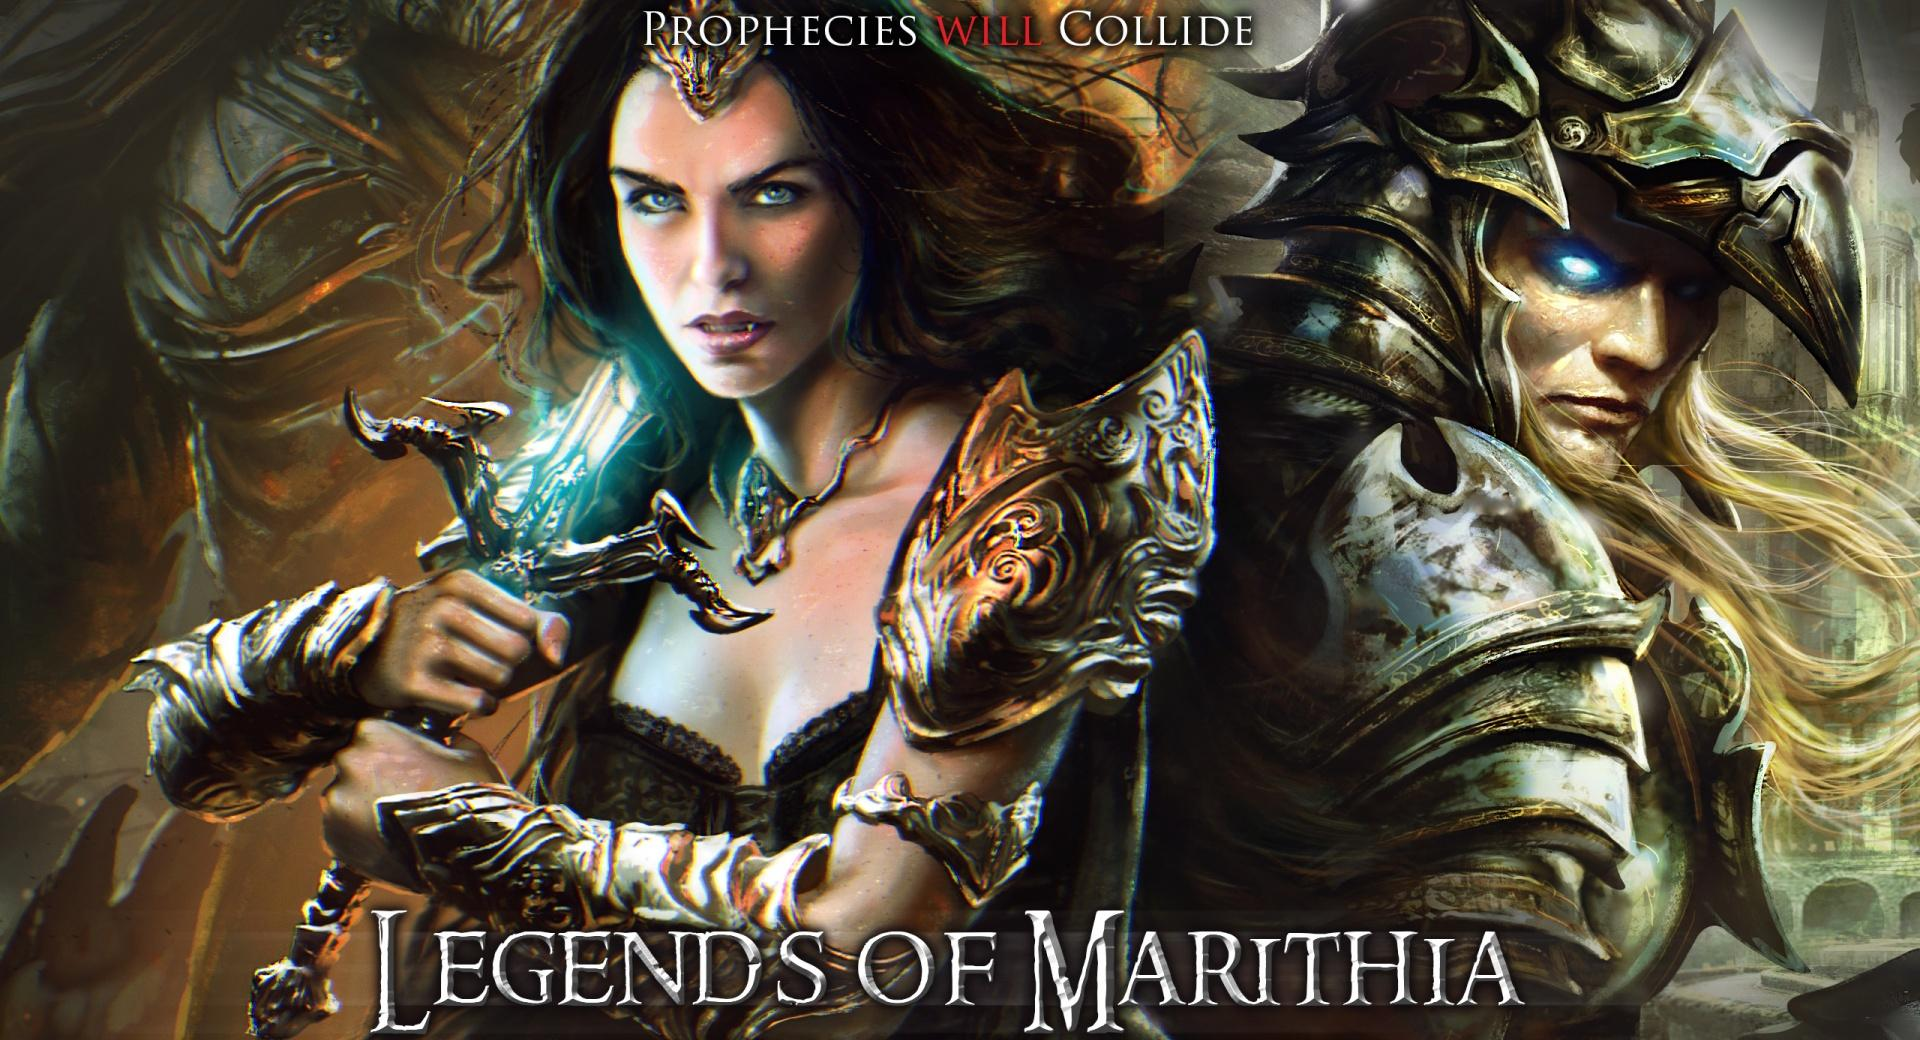 Legends of Marithia Clean Version wallpapers HD quality